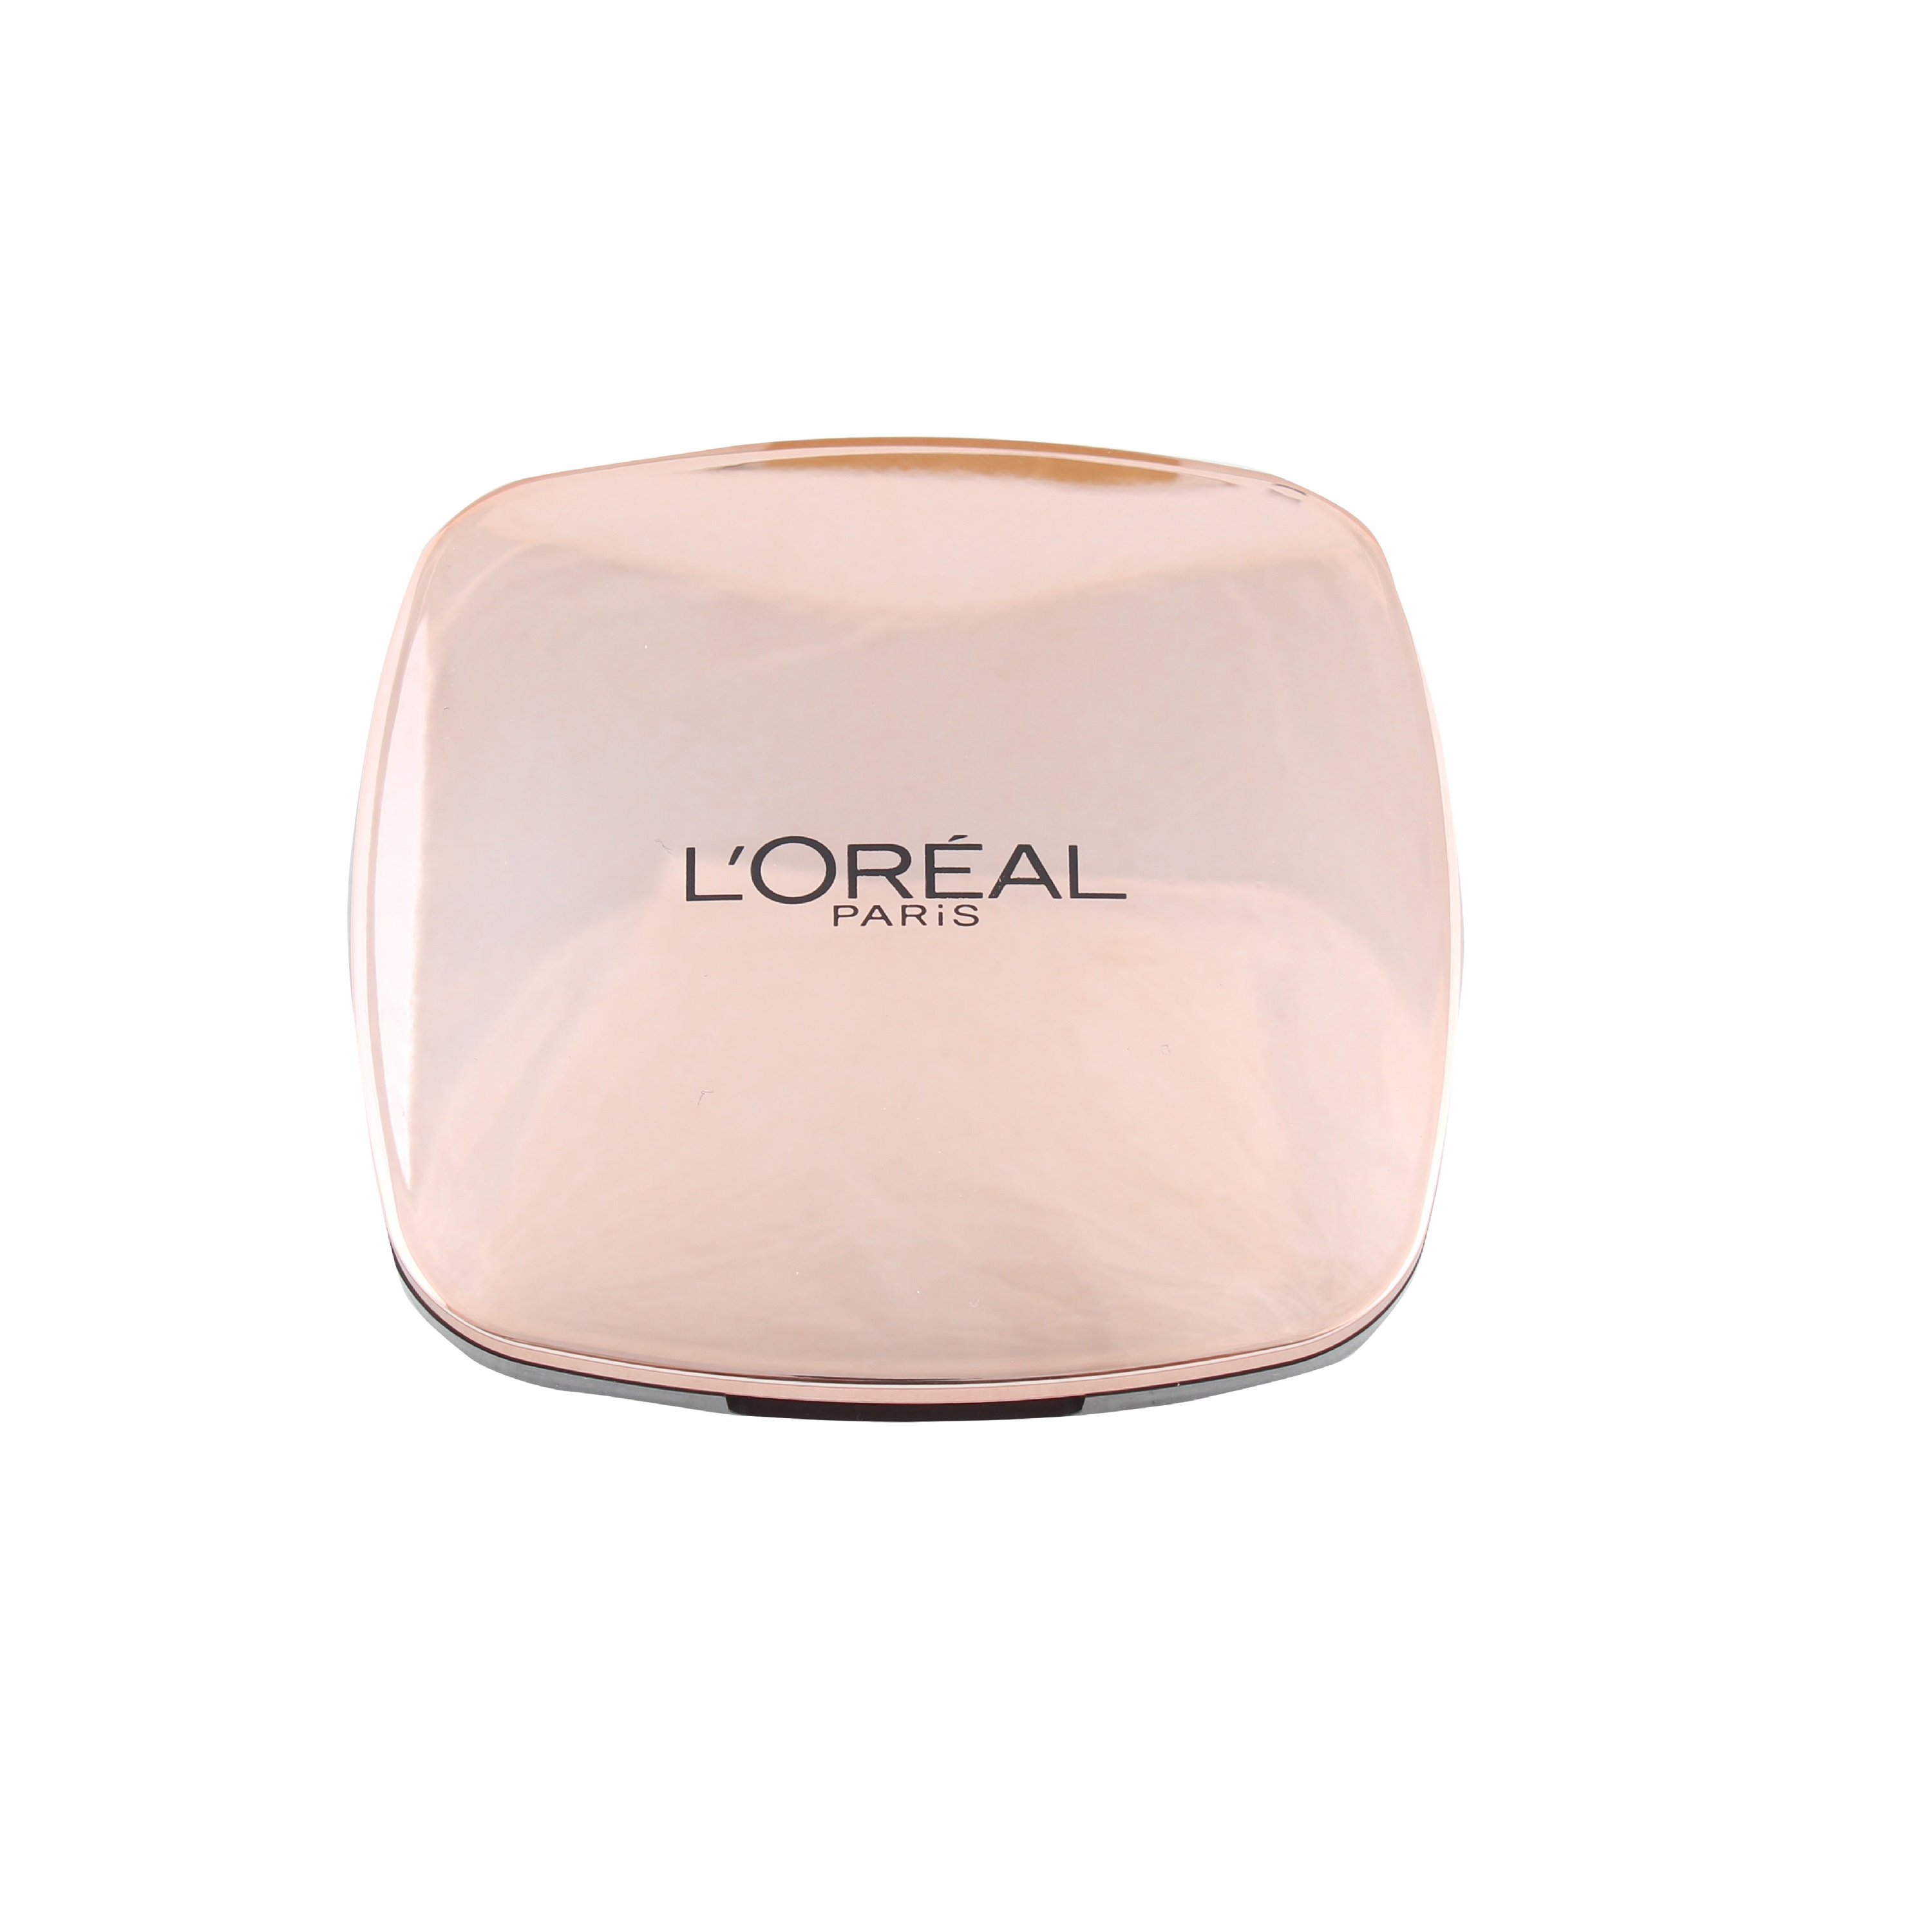 L'Oreal Paris Lucent Magique Blush Blushing Kiss 03